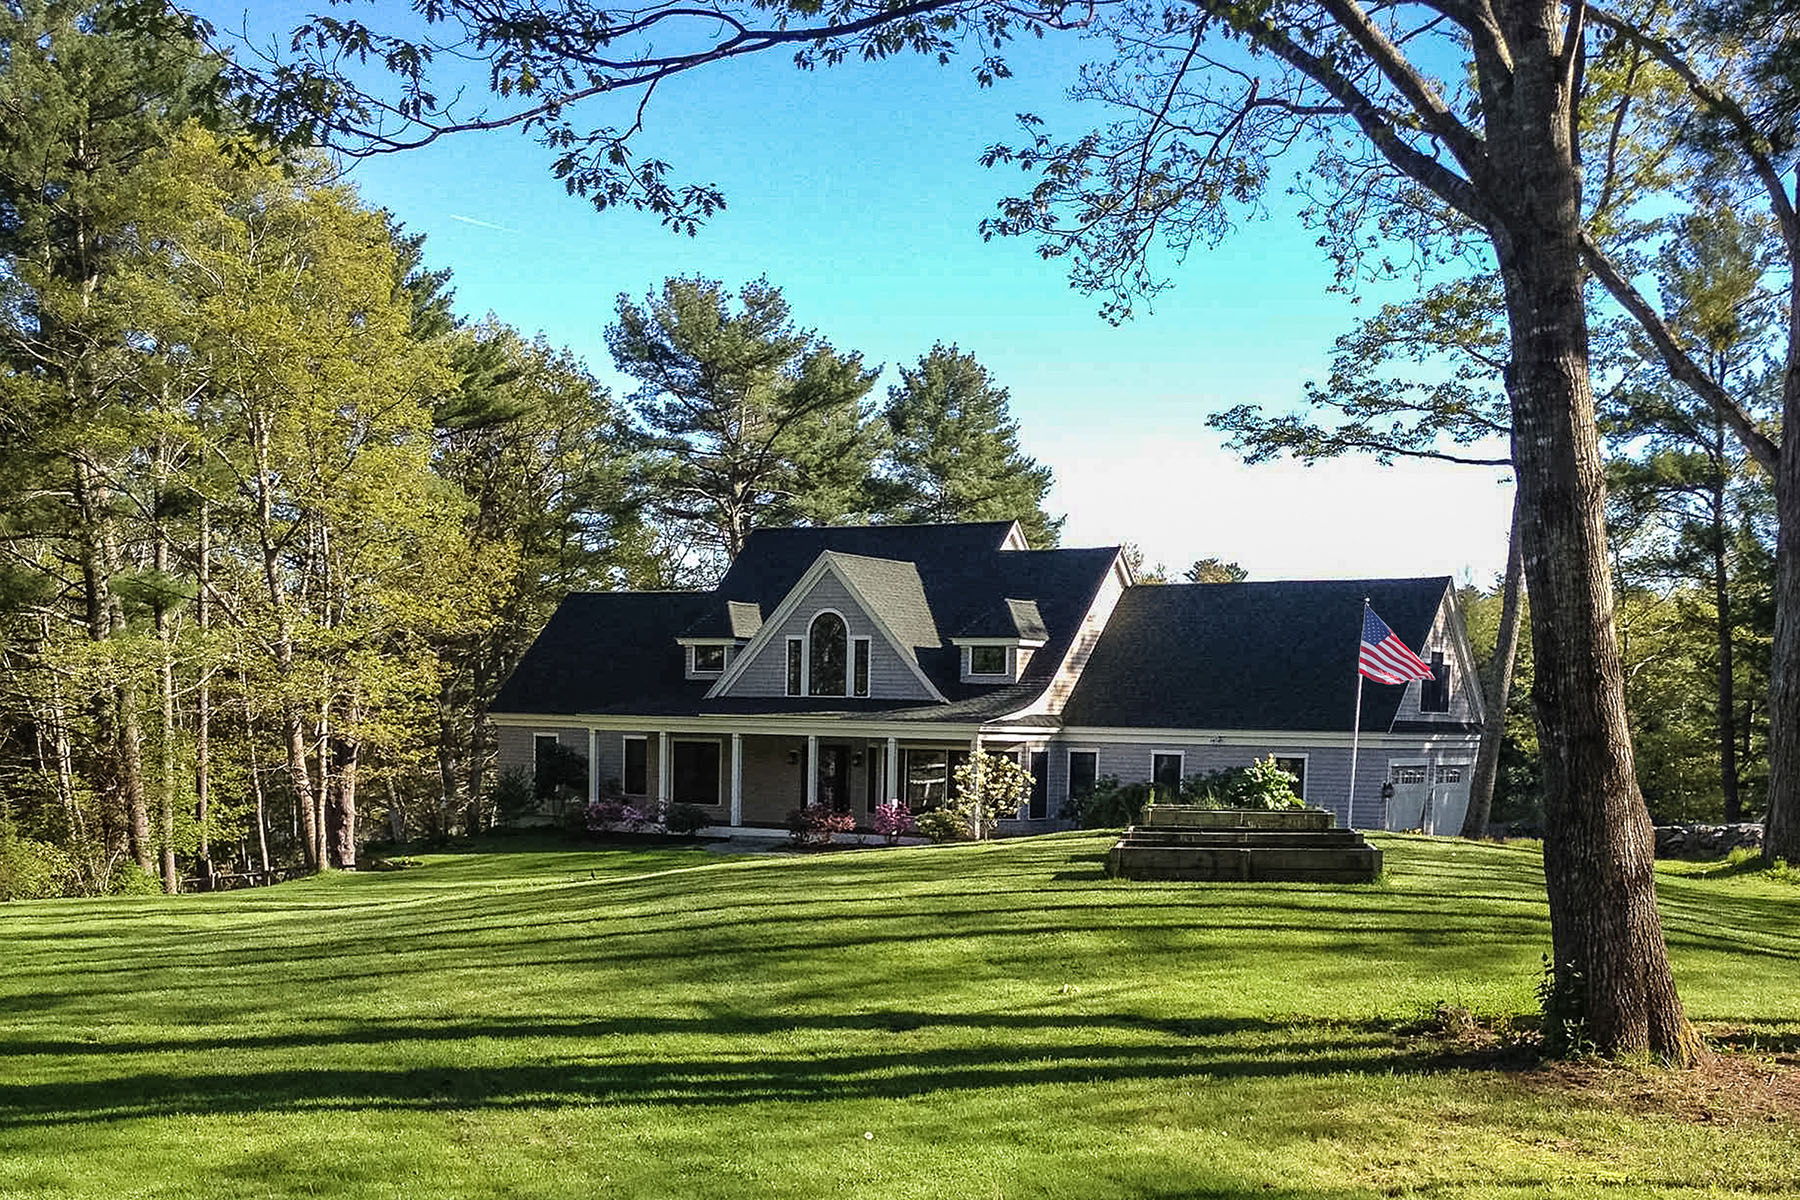 Single Family Home for Sale at Lea Shores 20 Lea Shores Road Woolwich, Maine 04579 United States